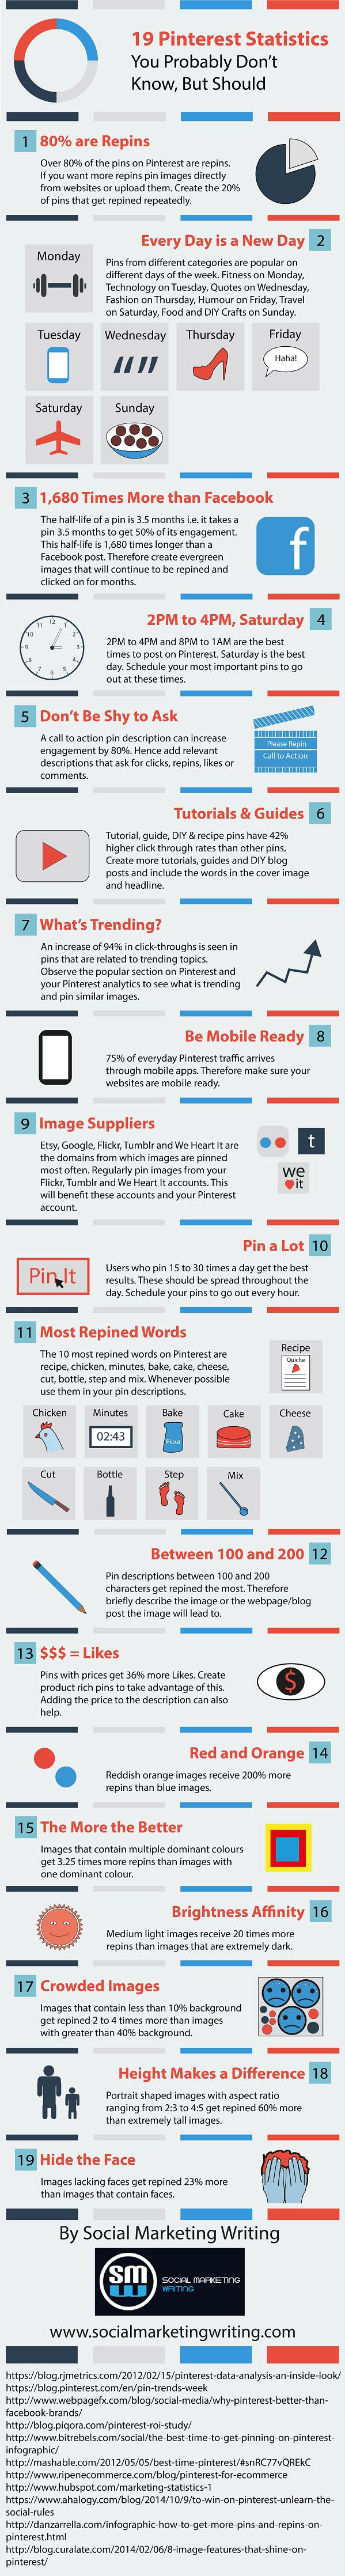 19 Pinterest Statistics You Probably Don't Know, But Should [Infographic] | Social Media Today